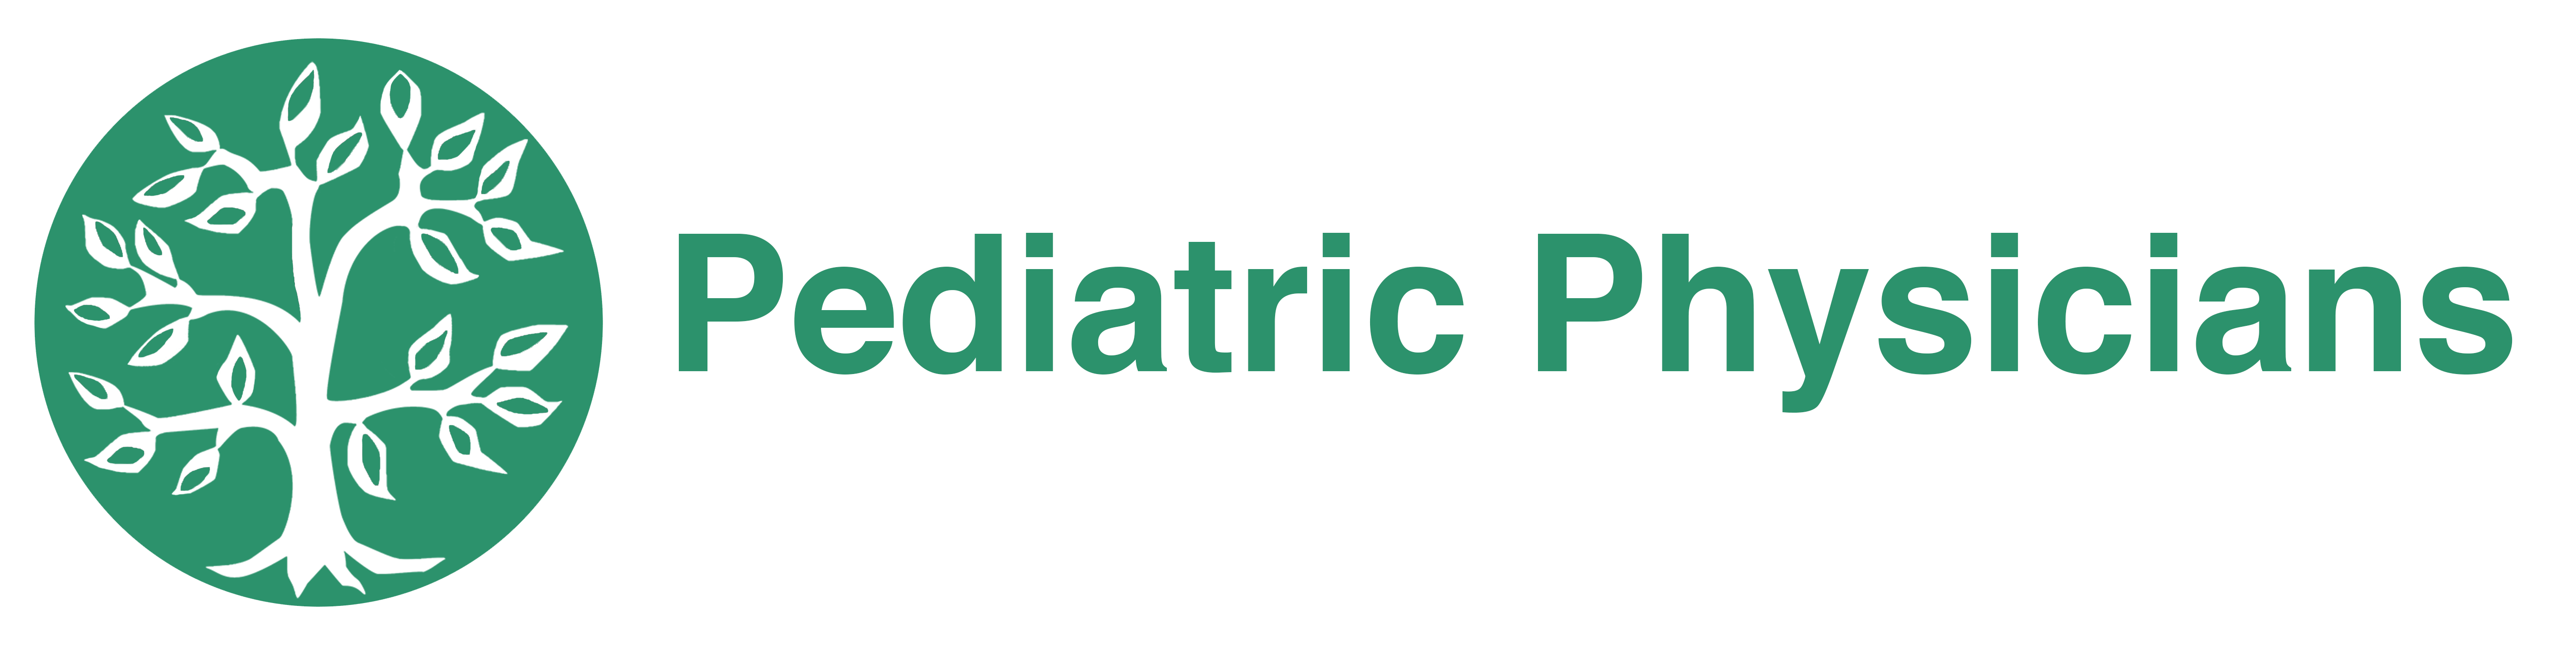 pediatricsphysicians